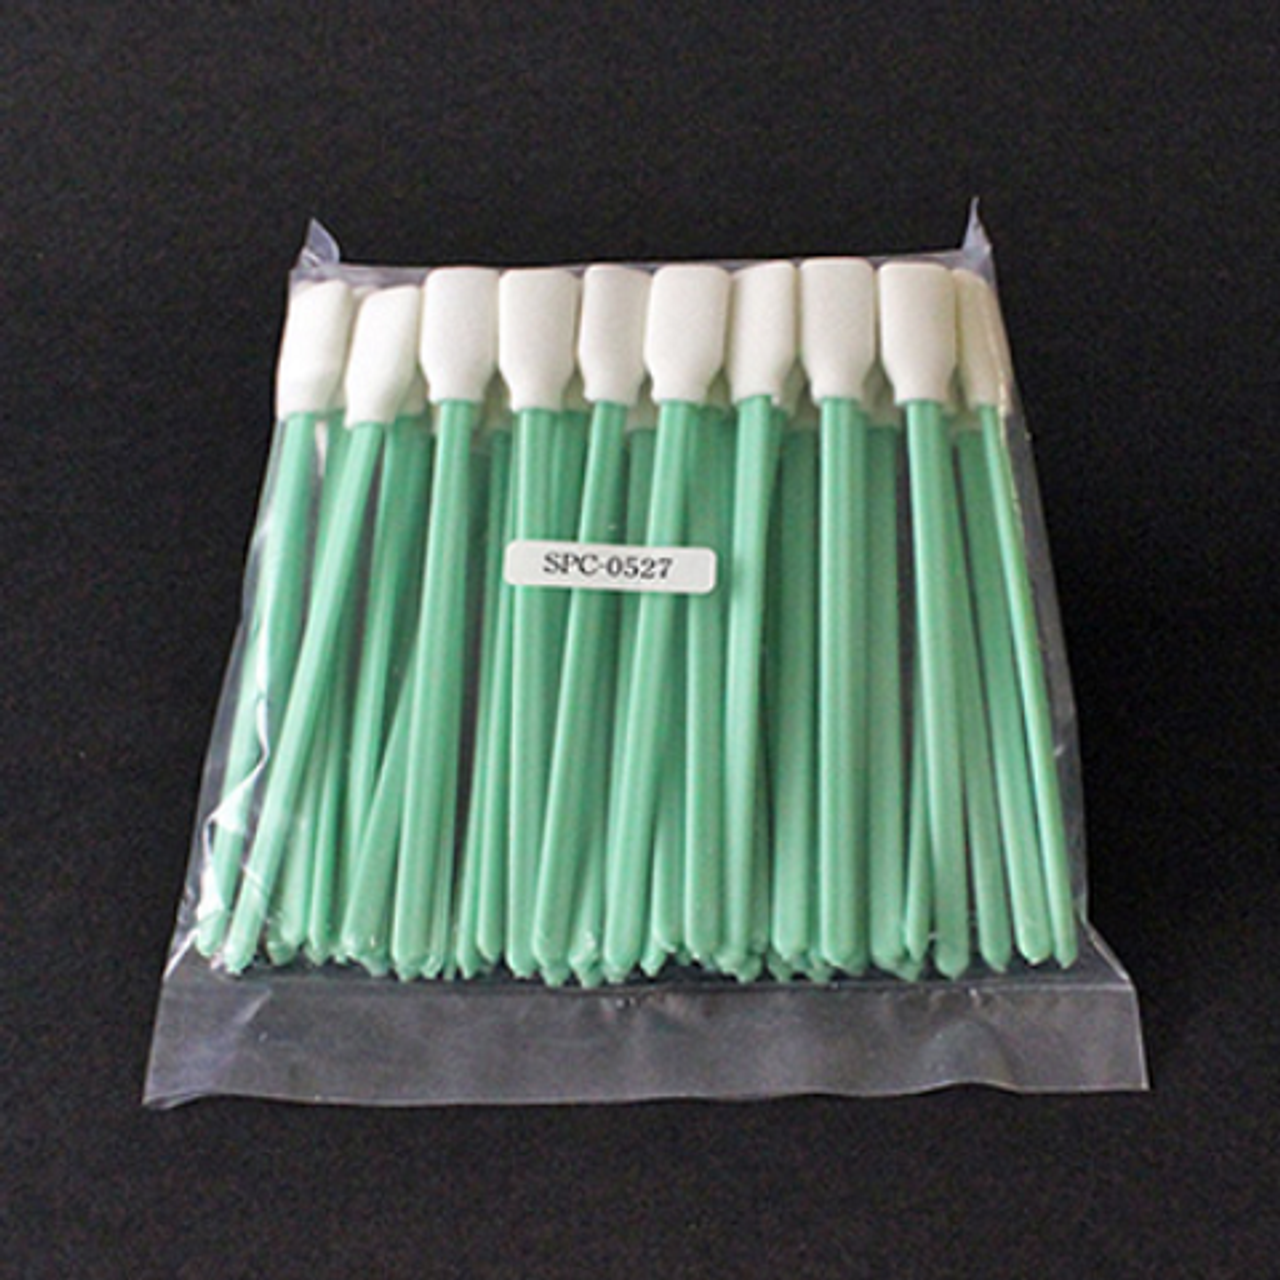 Cleaning Sticks (Pack of 50) SPC-0527